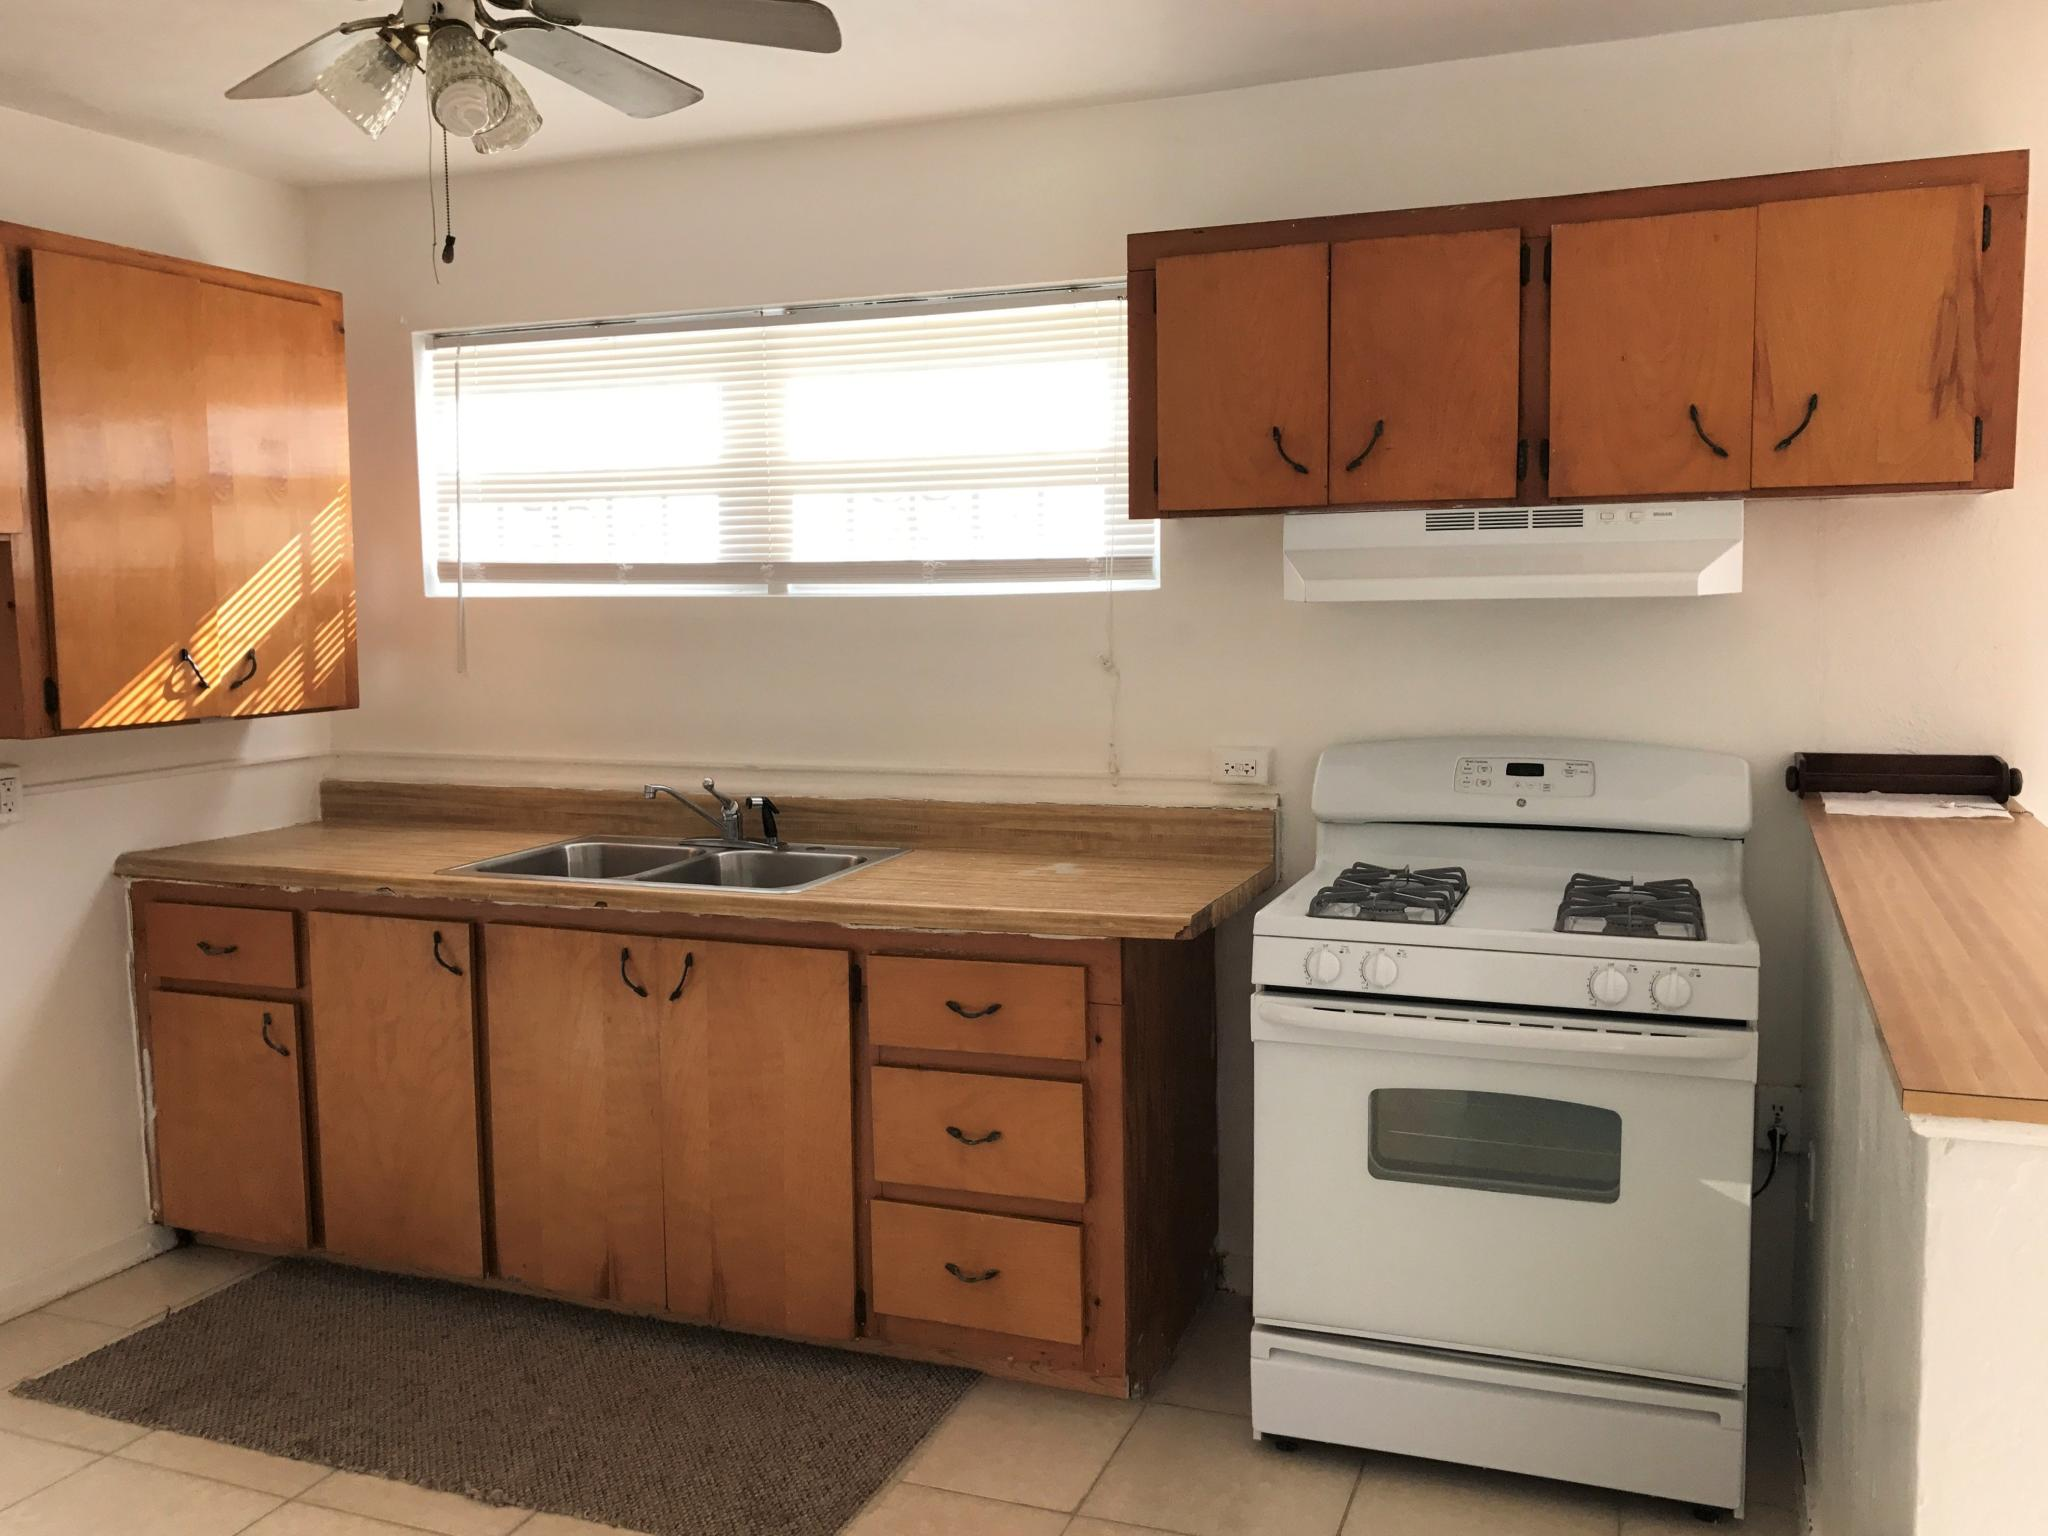 510 Fremont Ave For Rent - Daytona Beach, FL | Trulia